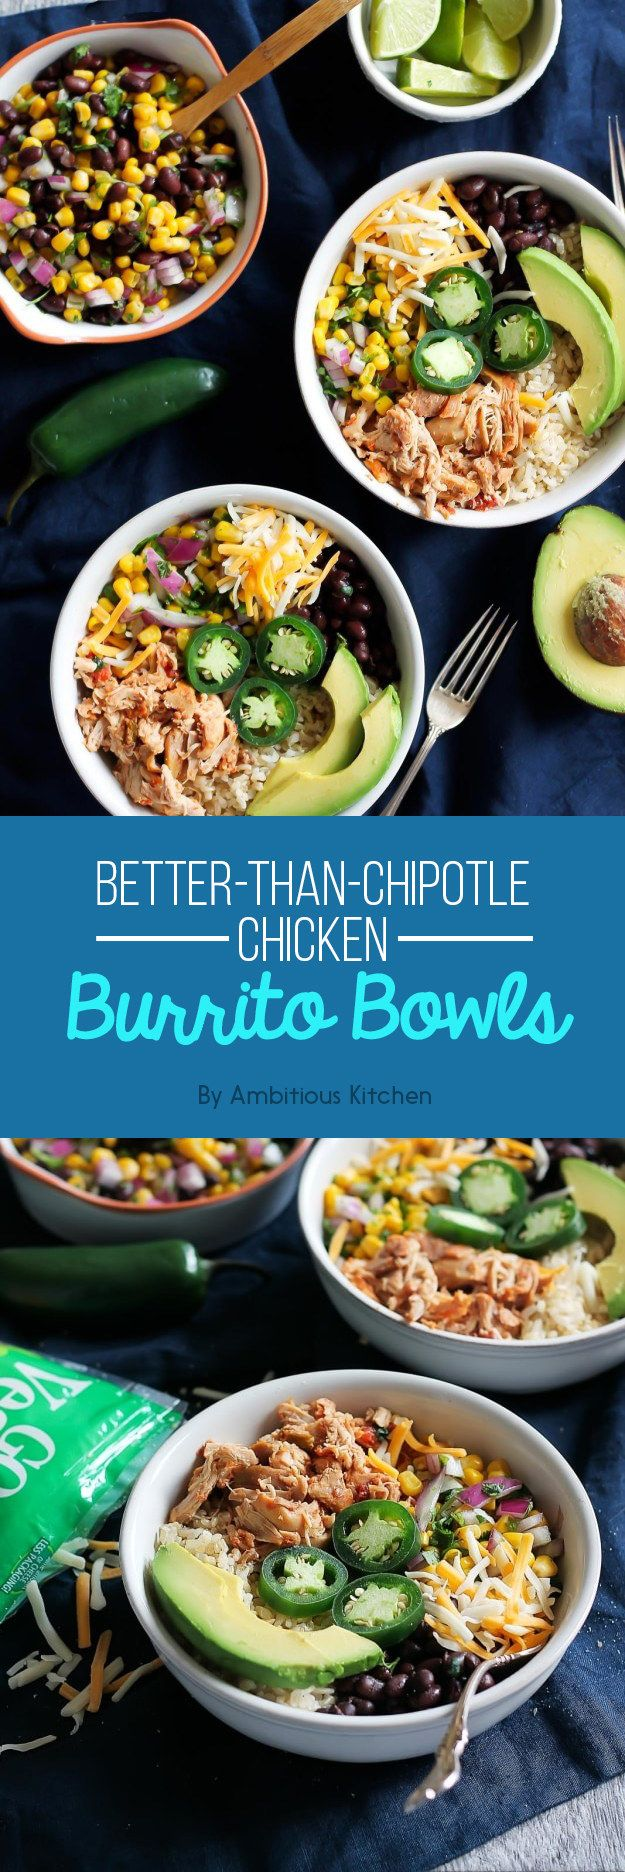 Better-Than-Chipotle Chicken Burrito Bowls | 7 Tasty Dinners Under 500 Calories You Should Try